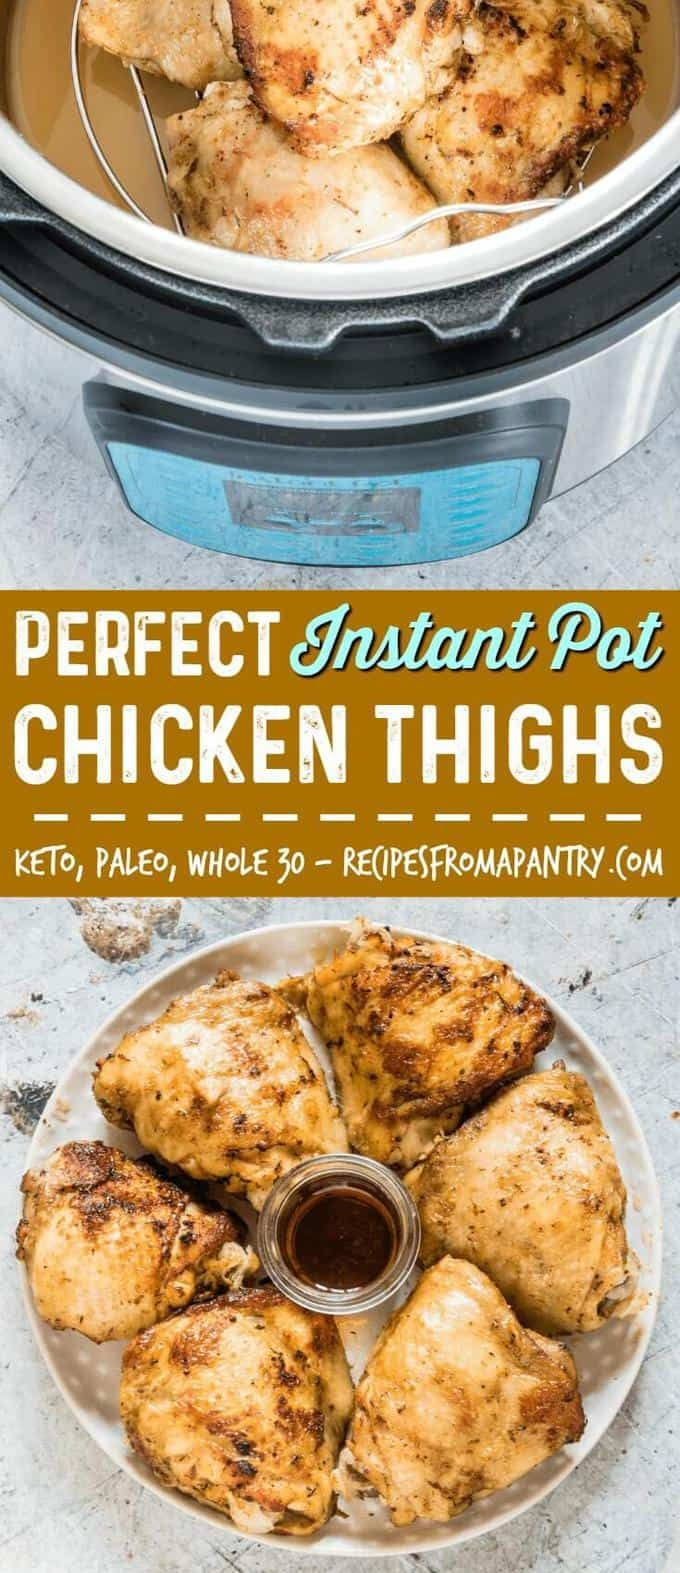 If you're looking for the BEST and EASIEST Instant Pot chicken thighs recipe, you've found it! This Instant Pot recipe produces flavourful, moist, and delicious chicken thighs in no time at all. Start with fresh or frozen chicken thighs!